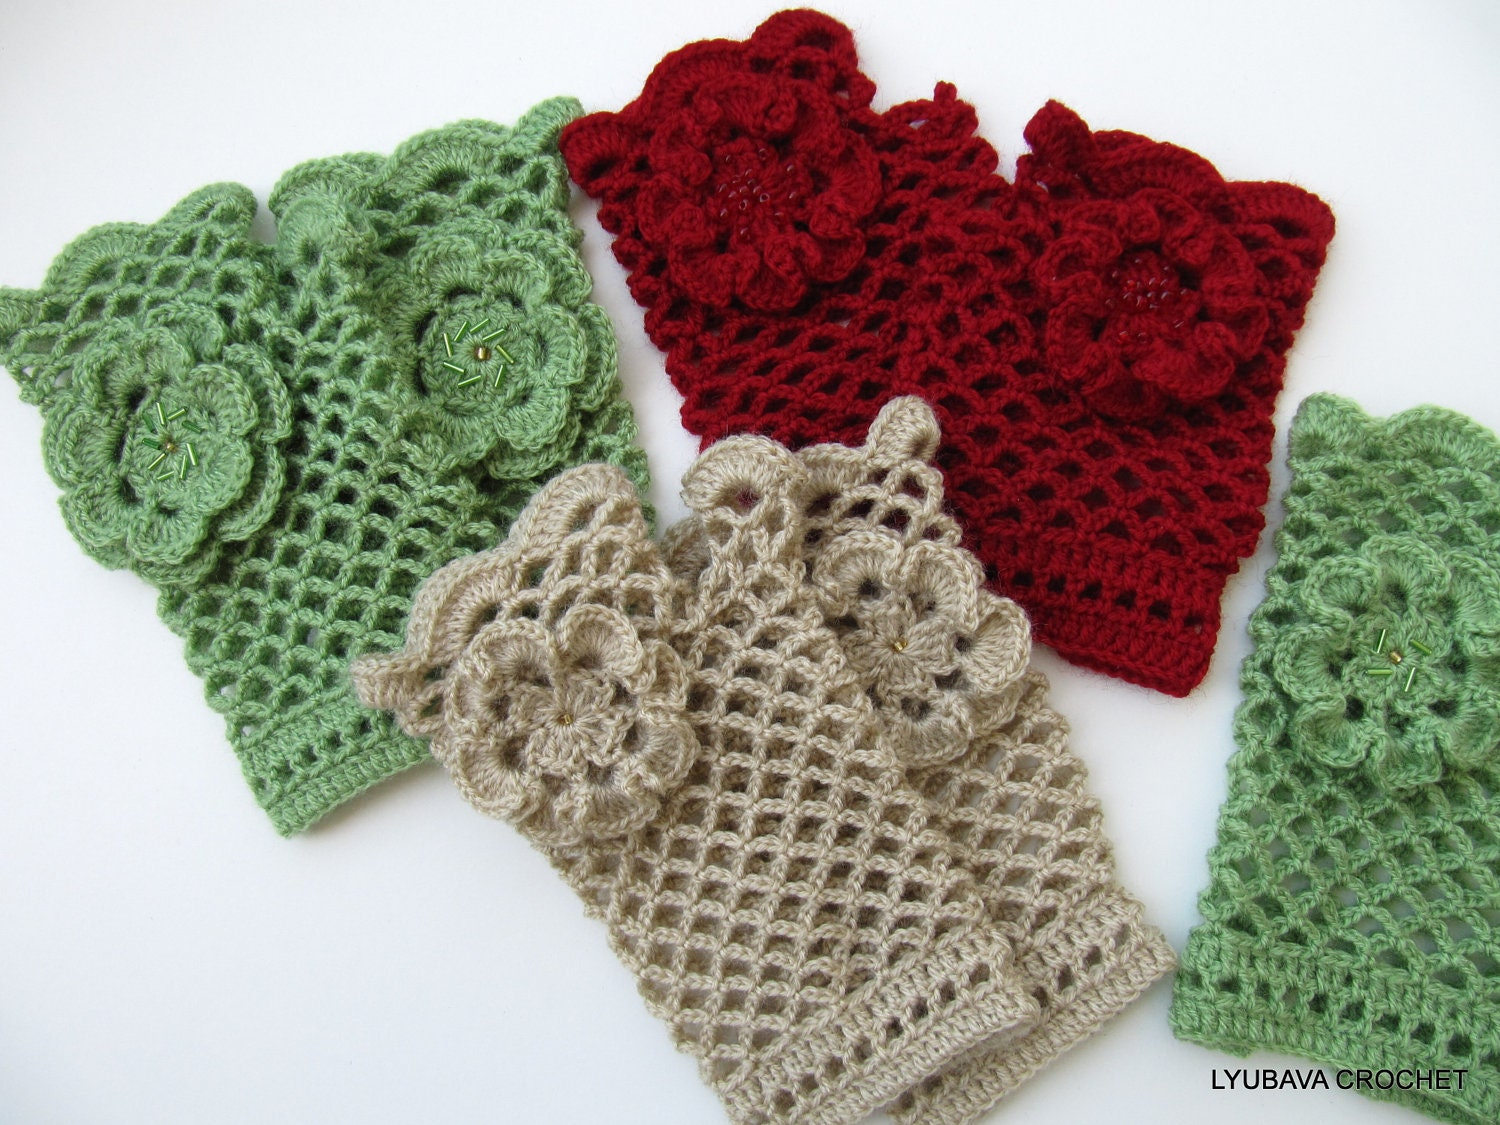 Crochet Fingerless Gloves Picture Tutorial : Fingerless Leather Glove Pattern - Viewing Gallery